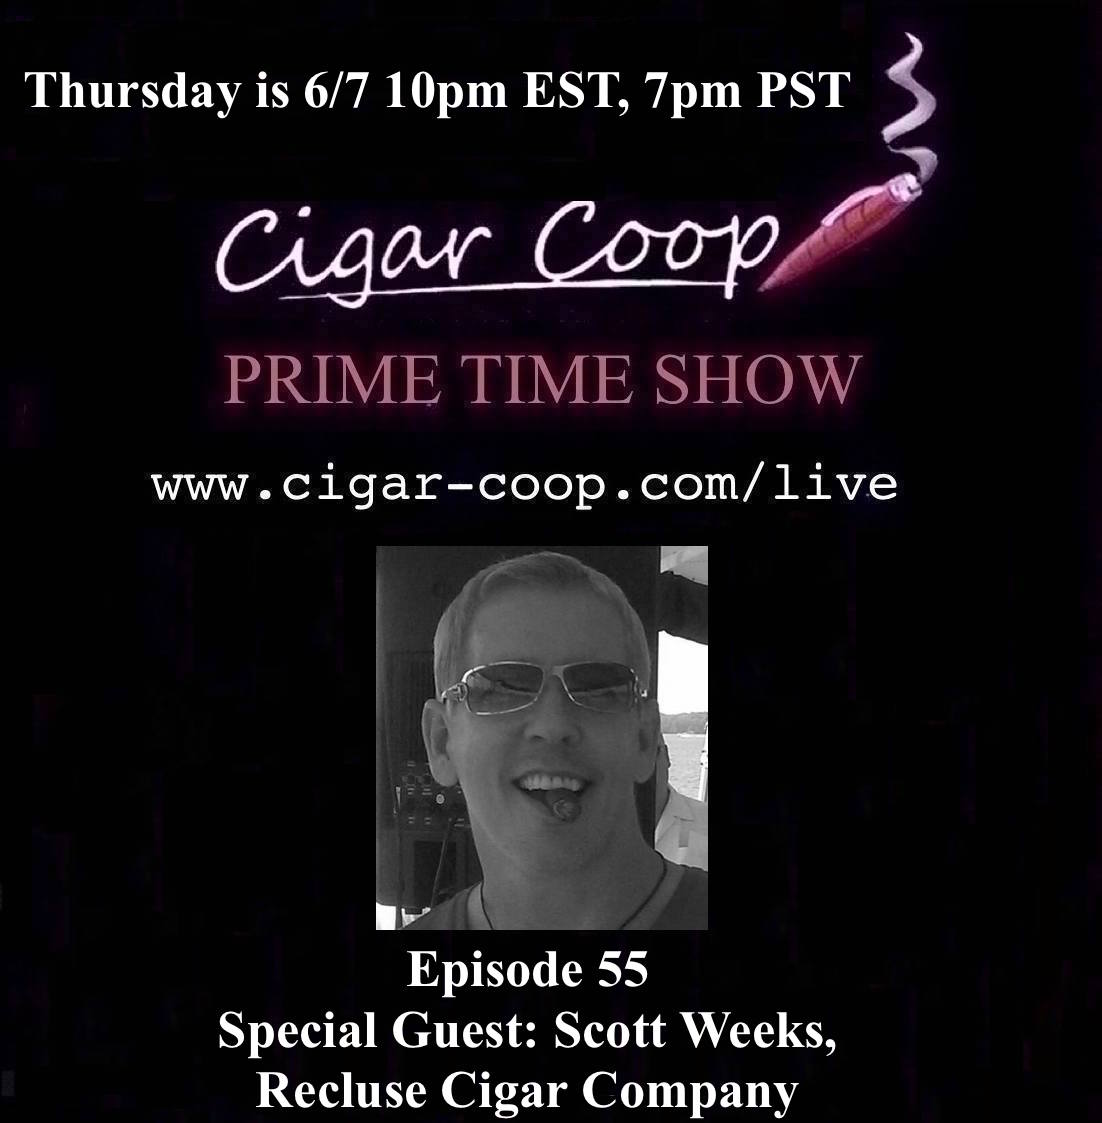 Announcement: Prime Time Show Episode 55 – Scott Weeks, Recluse Cigar Co. 10pm EST, 7pm PST